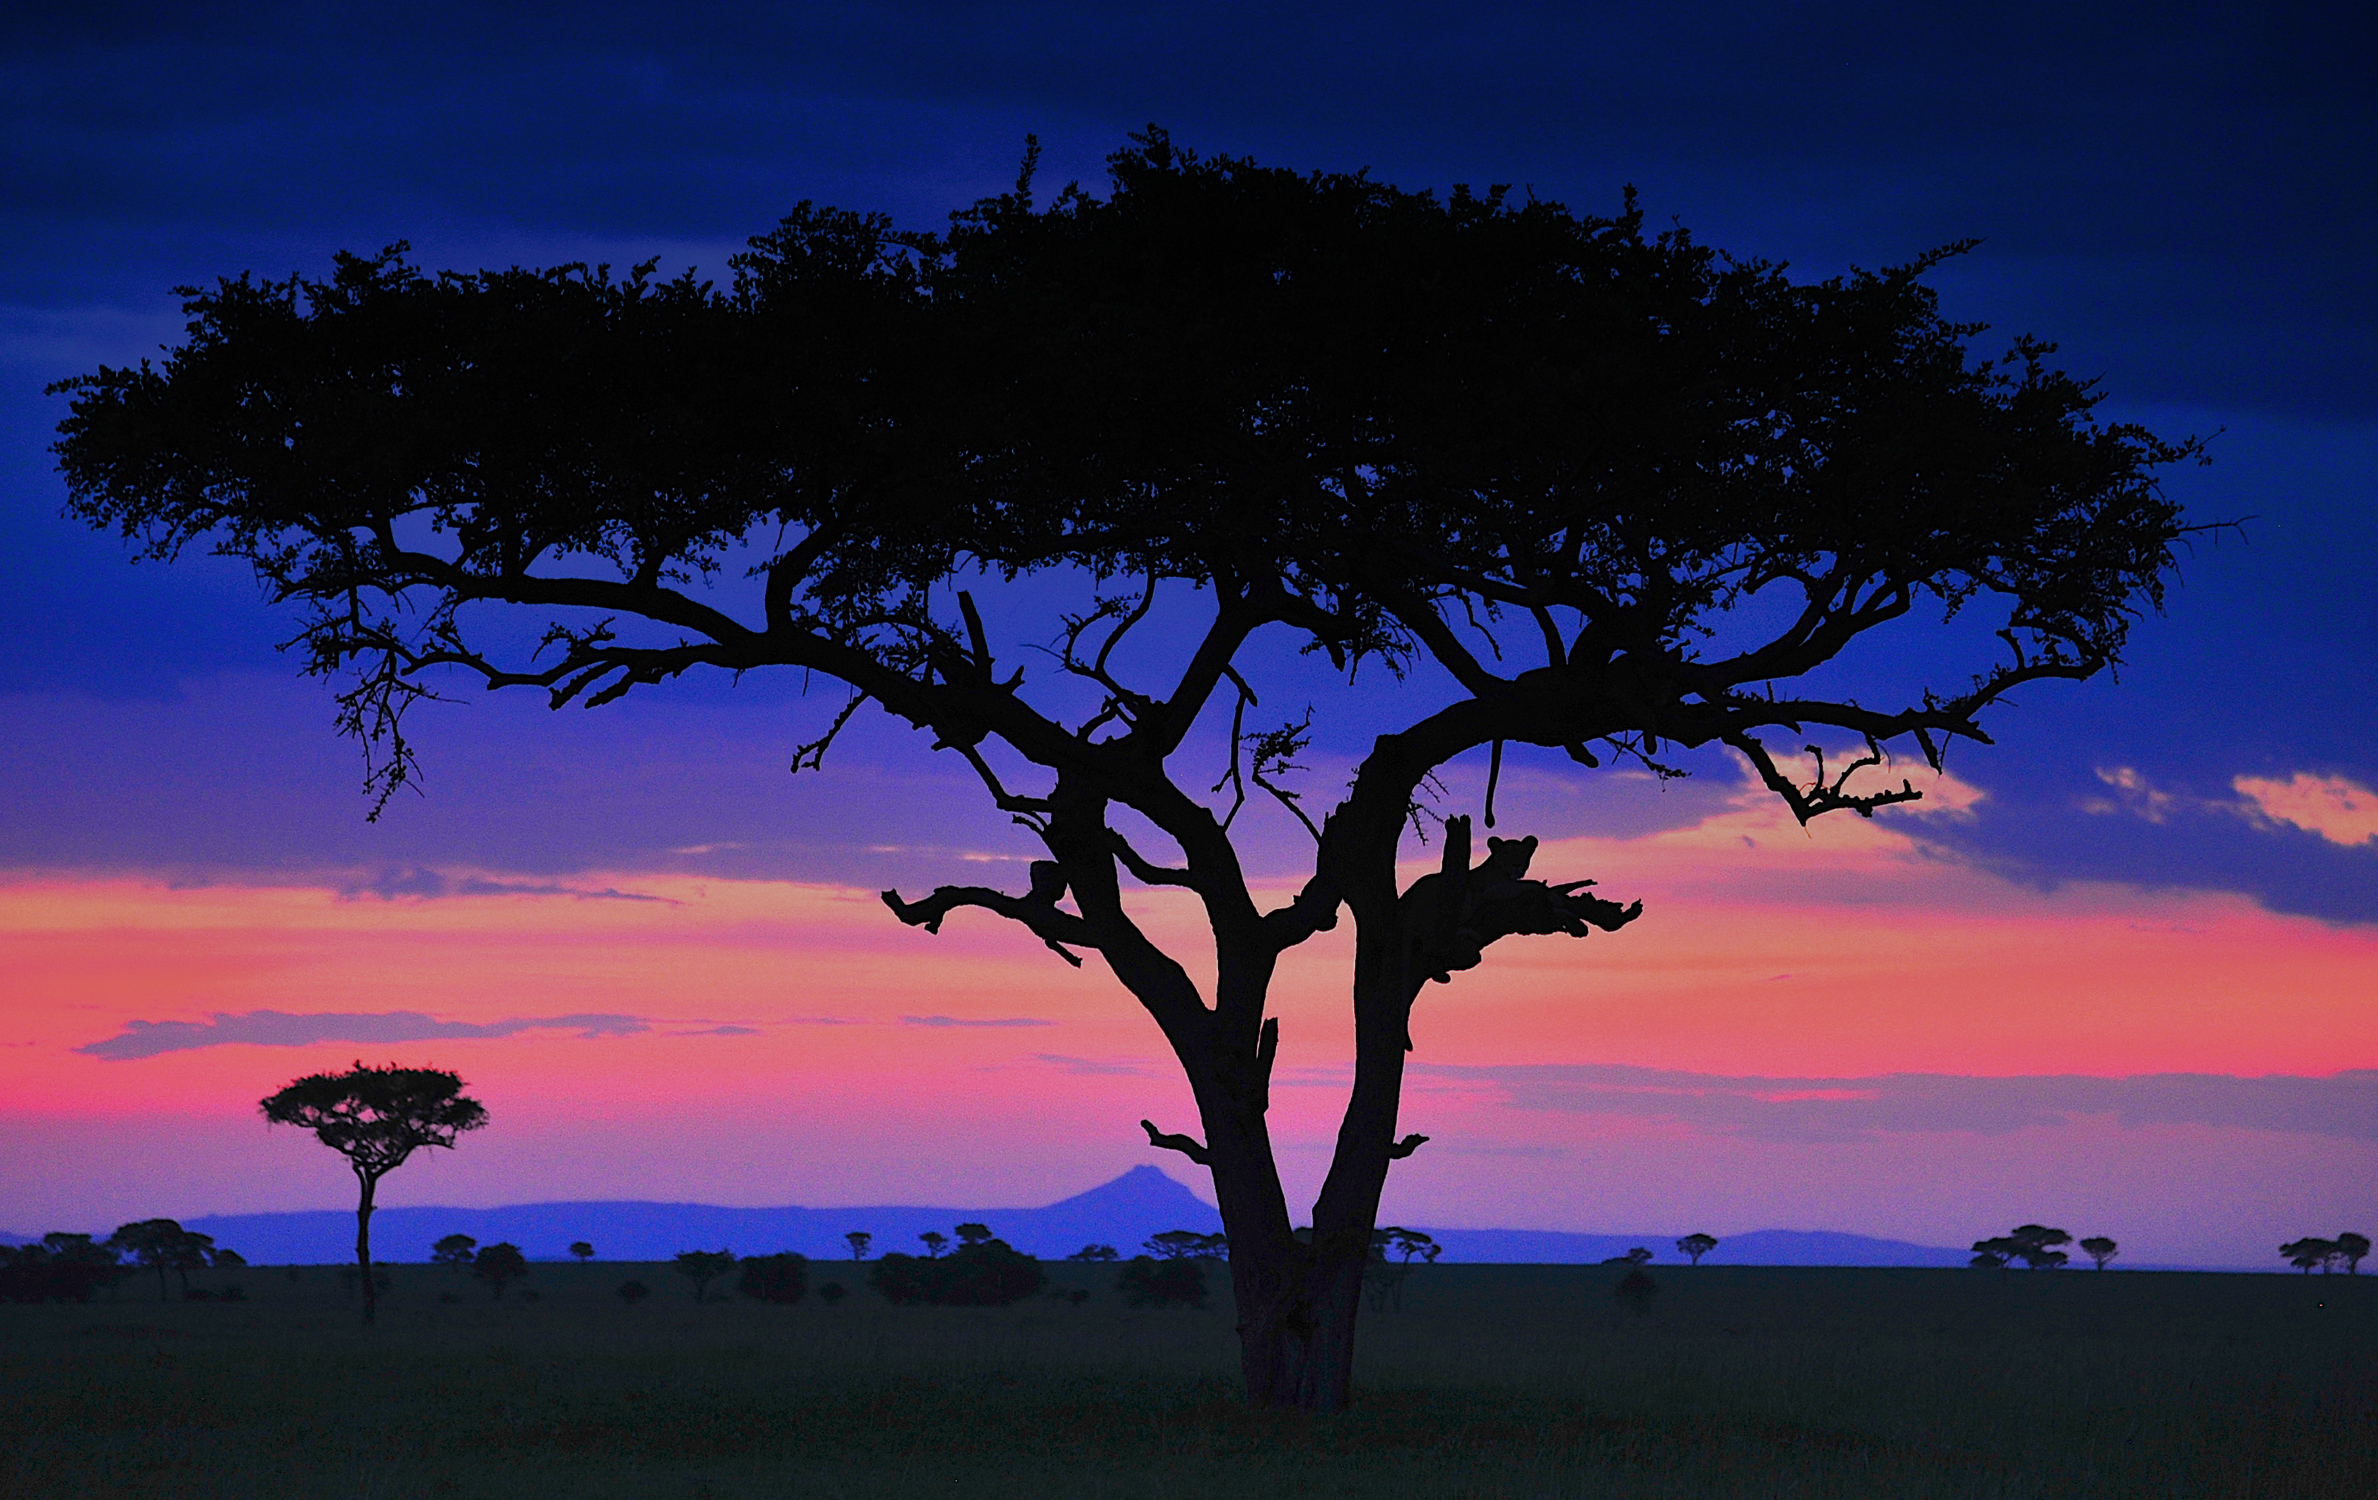 African Pride - The unfolding of an African tale